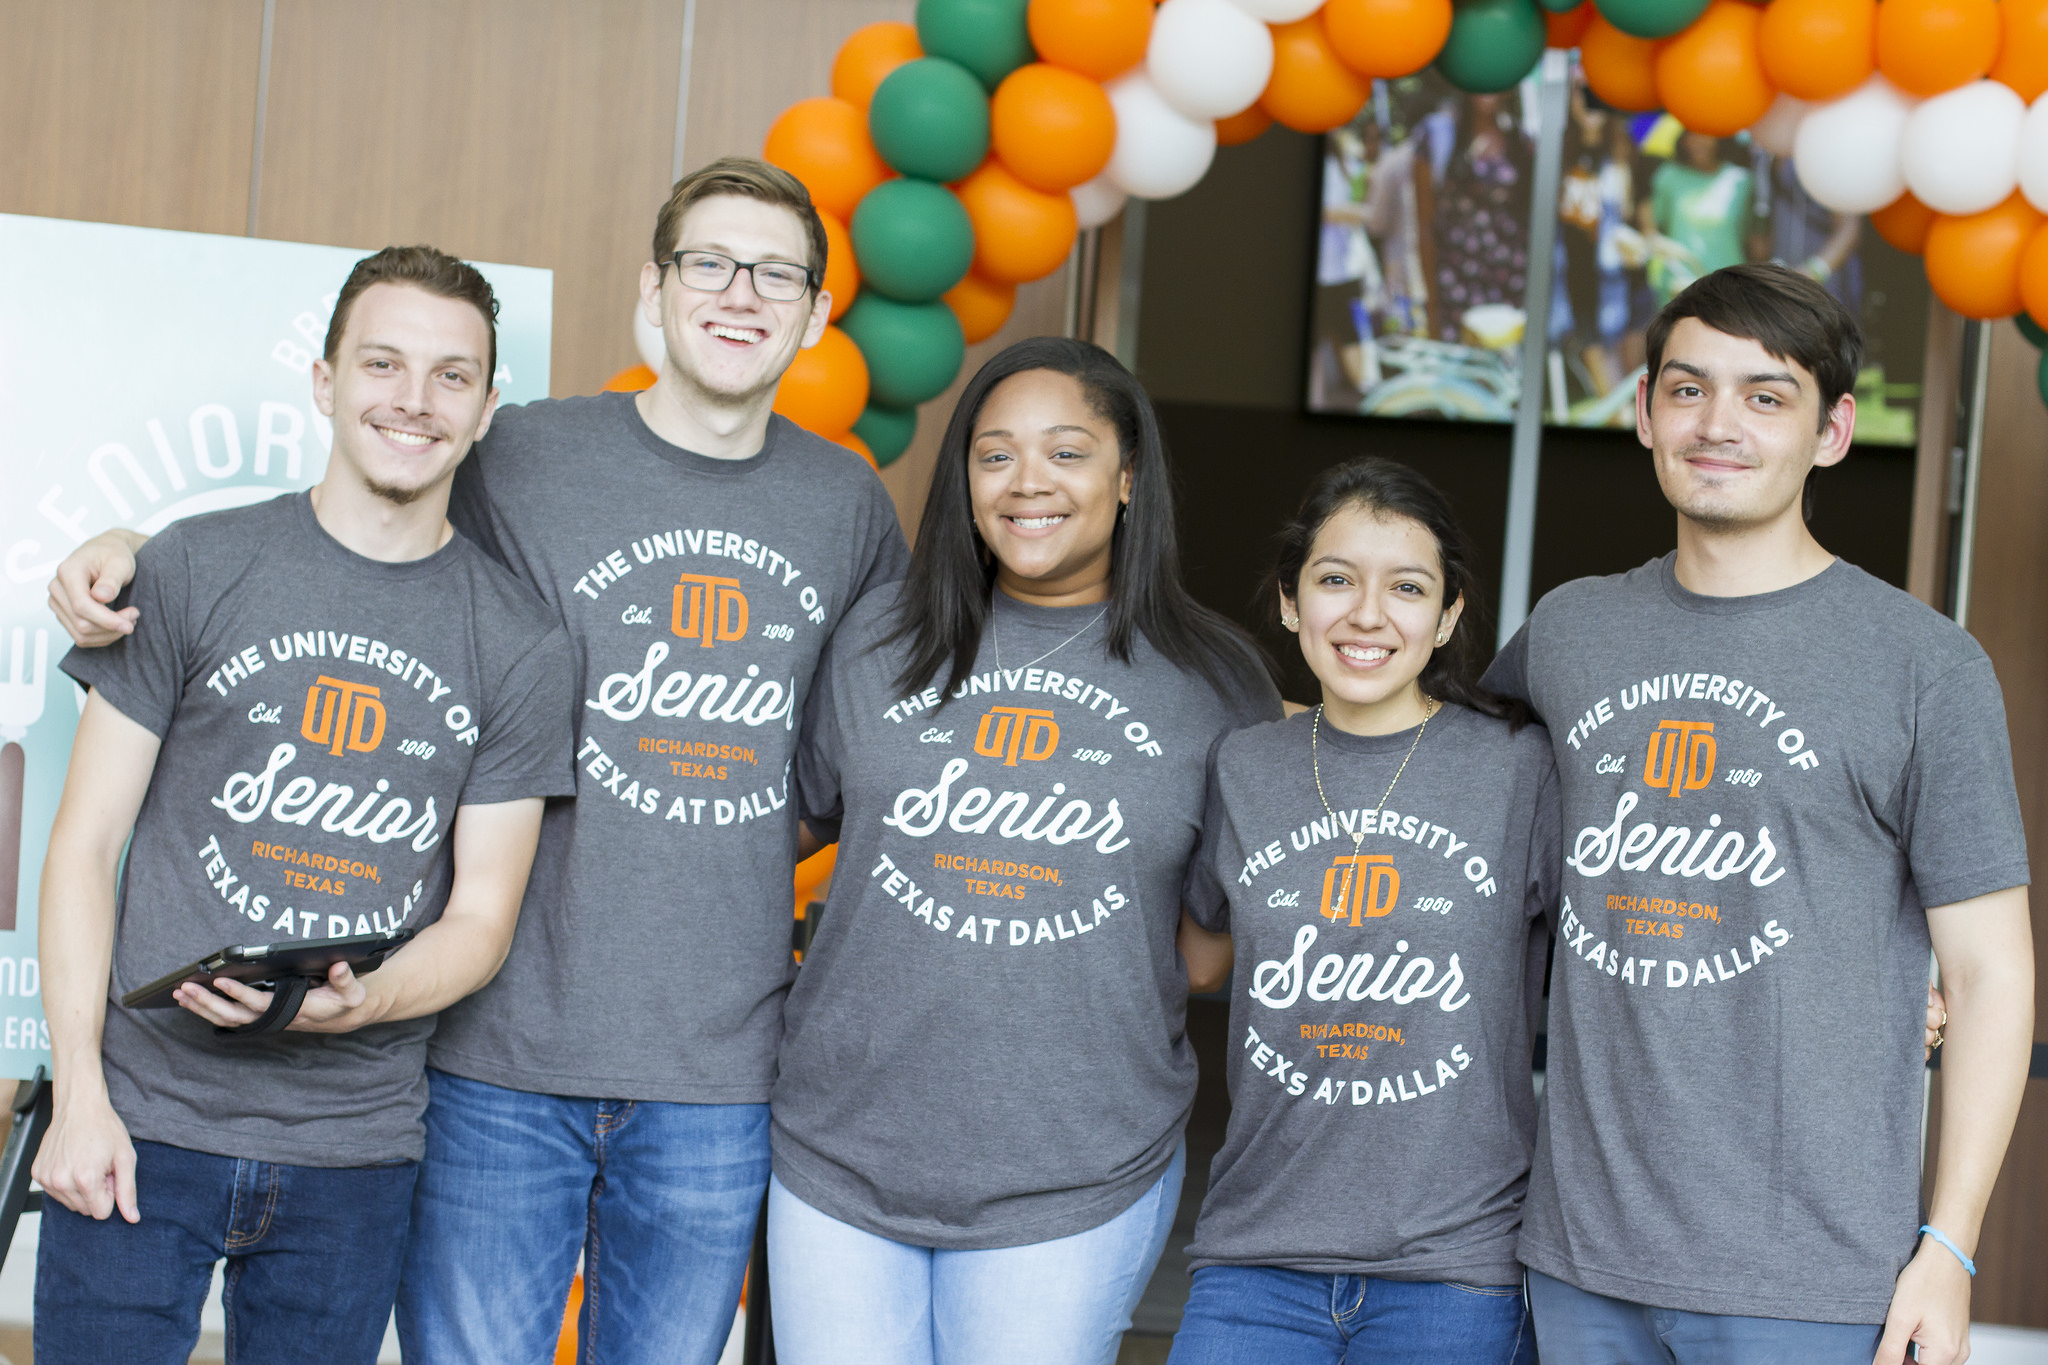 UT Dallas seniors